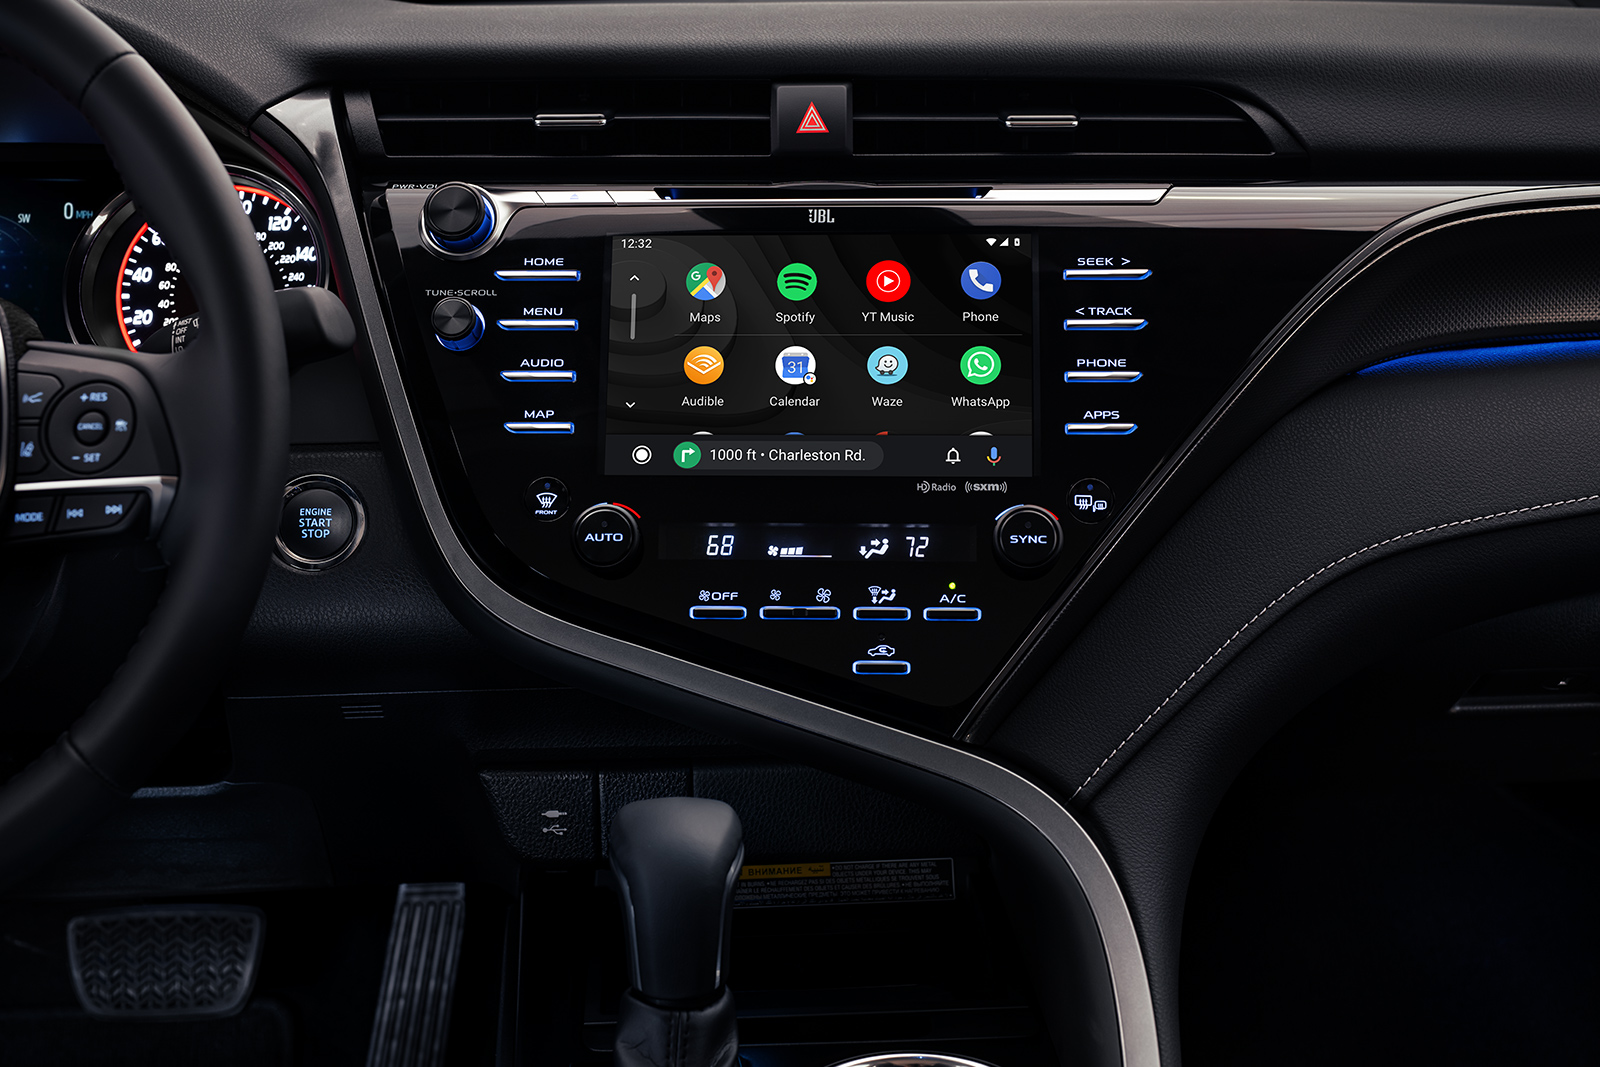 Model Features of the 2020 Toyota Camry at Tri County Toyota | The monitor of the 2020 Camry TRD